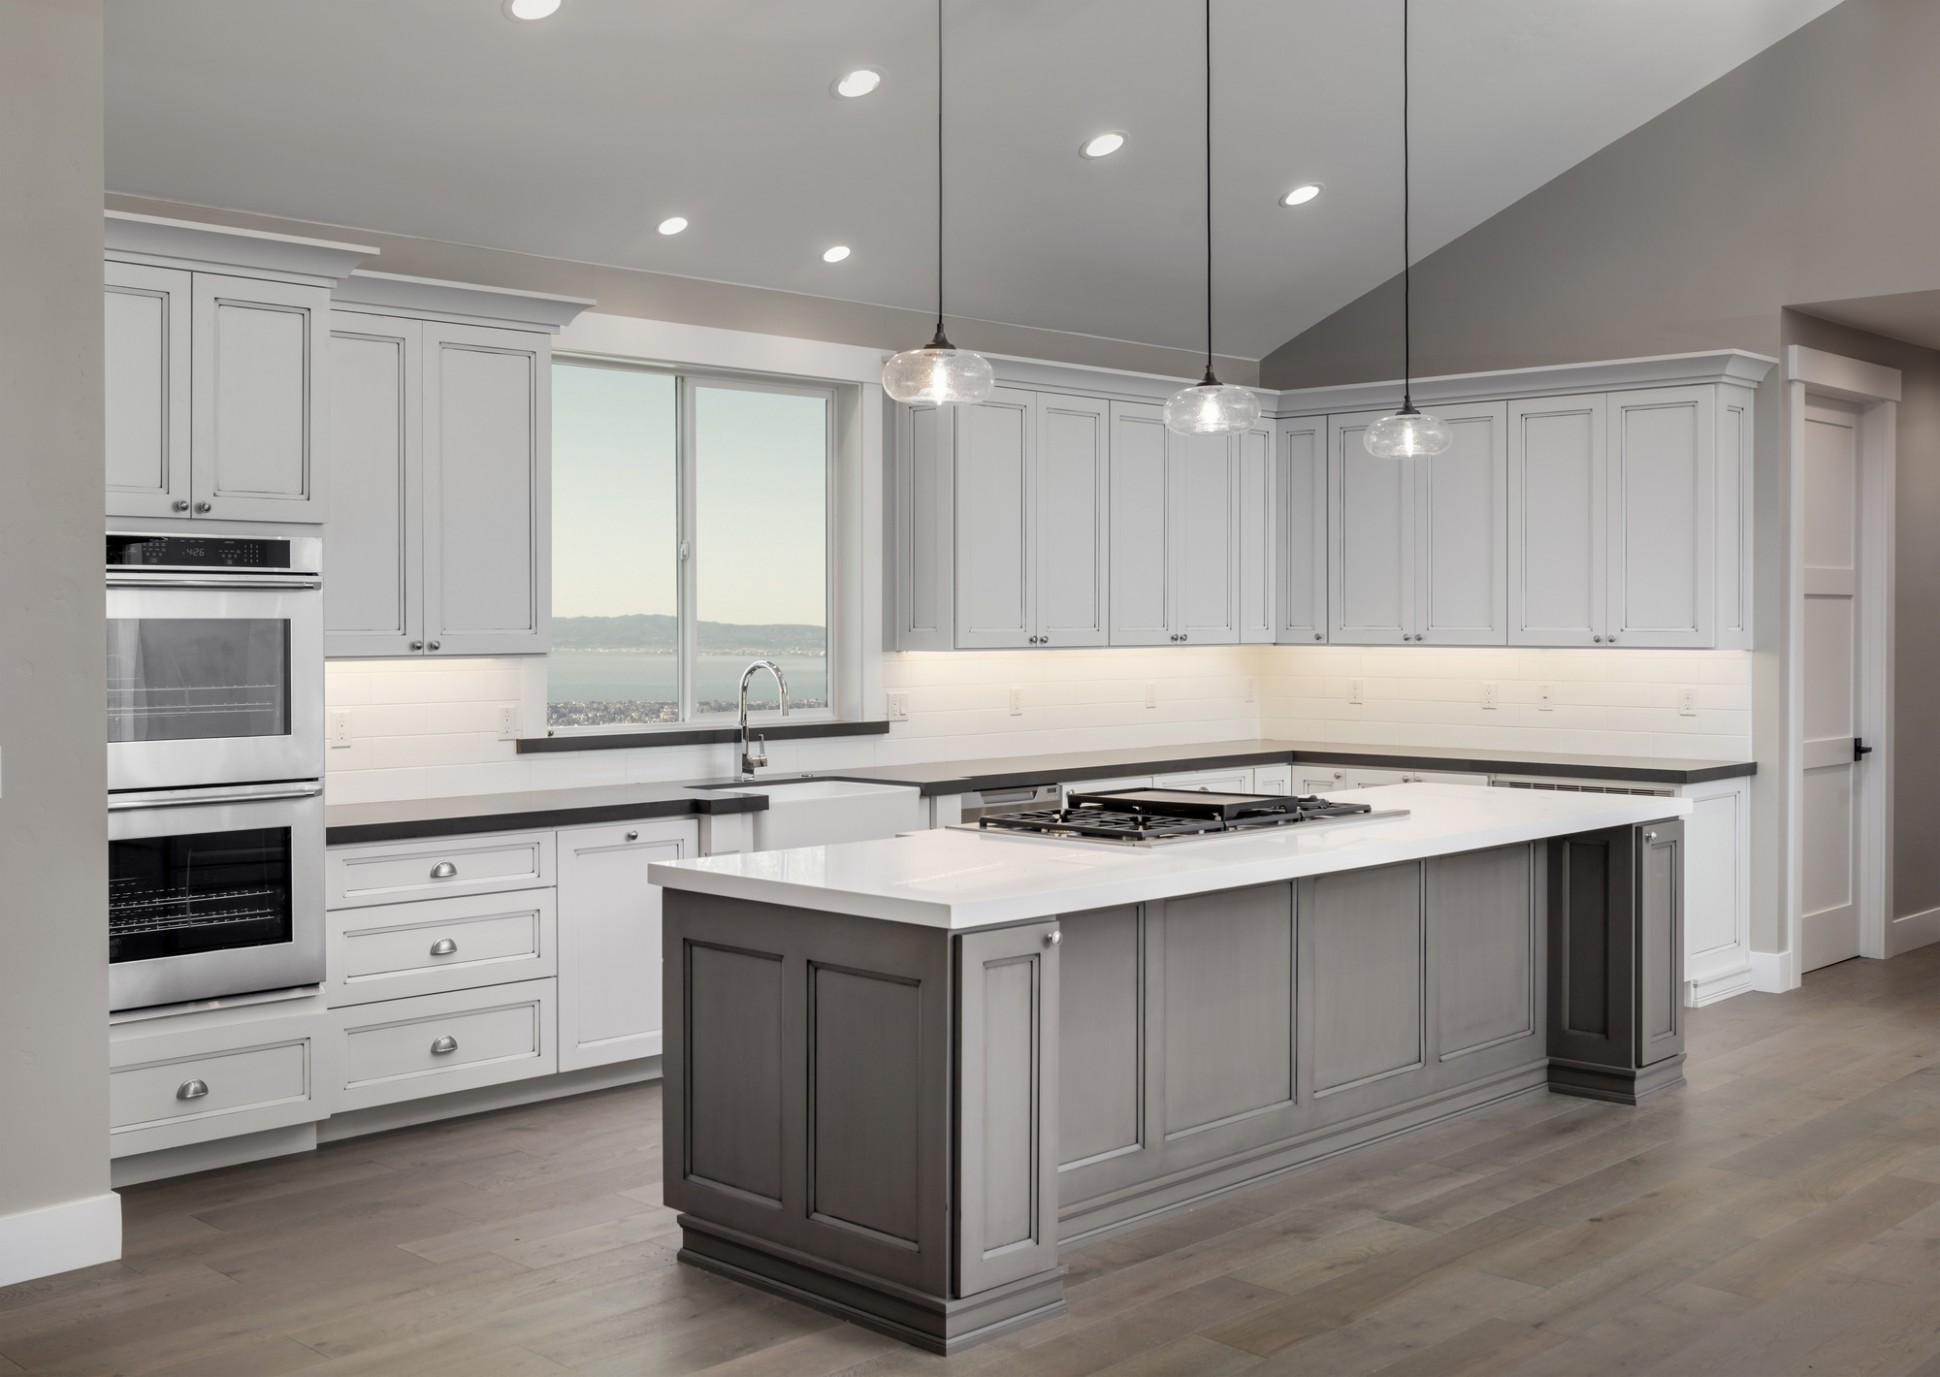 11 Popular Kitchen Cabinet Styles You Need to Know About - Kitchen Cabinet Styles And Finishes